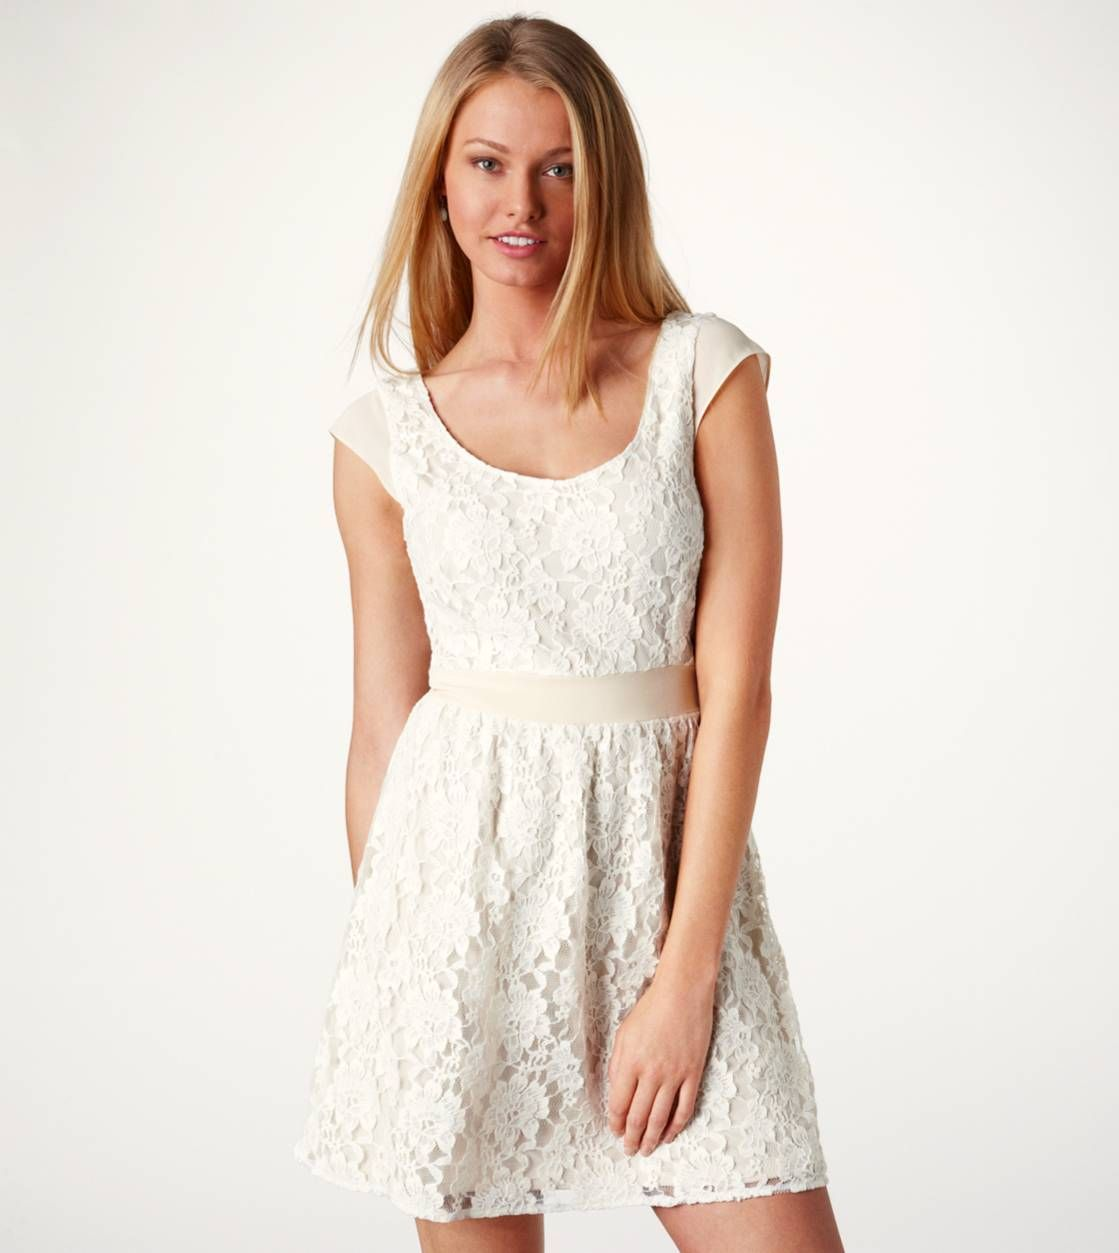 Clearance Dresses Skirts American Eagle Outfitters Lace Dress With Sleeves Lace Cutout Dress Lace White Dress